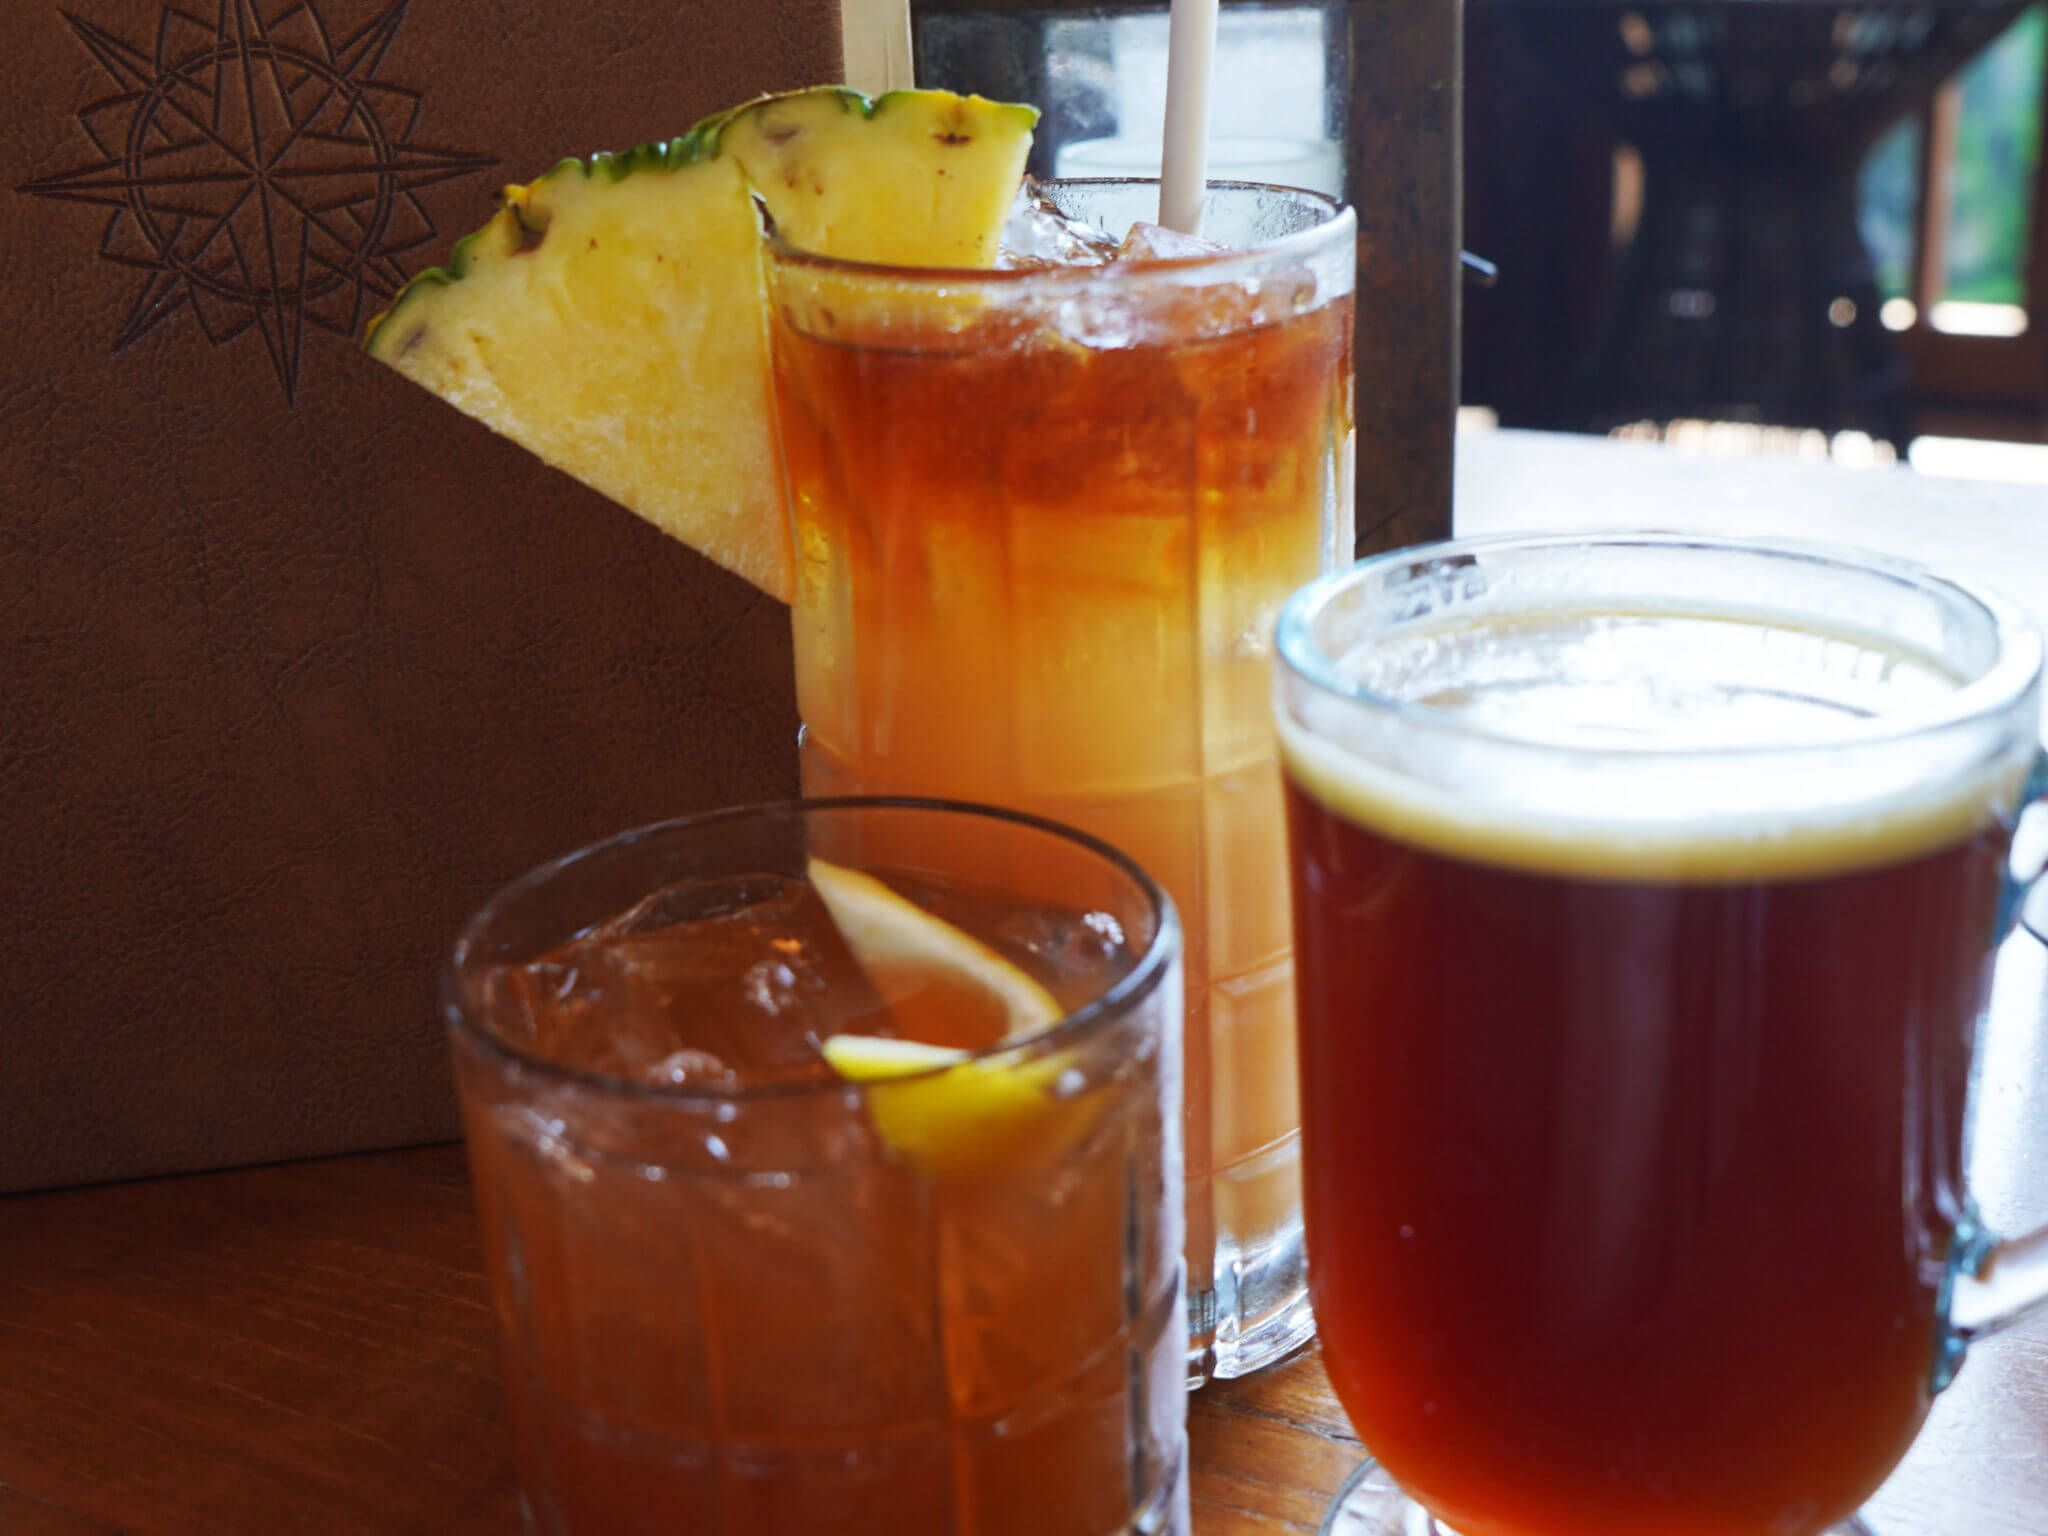 Traditional Mustang Coffee and drinks from Nomad Lounge in Animal Kingdom at Disney World